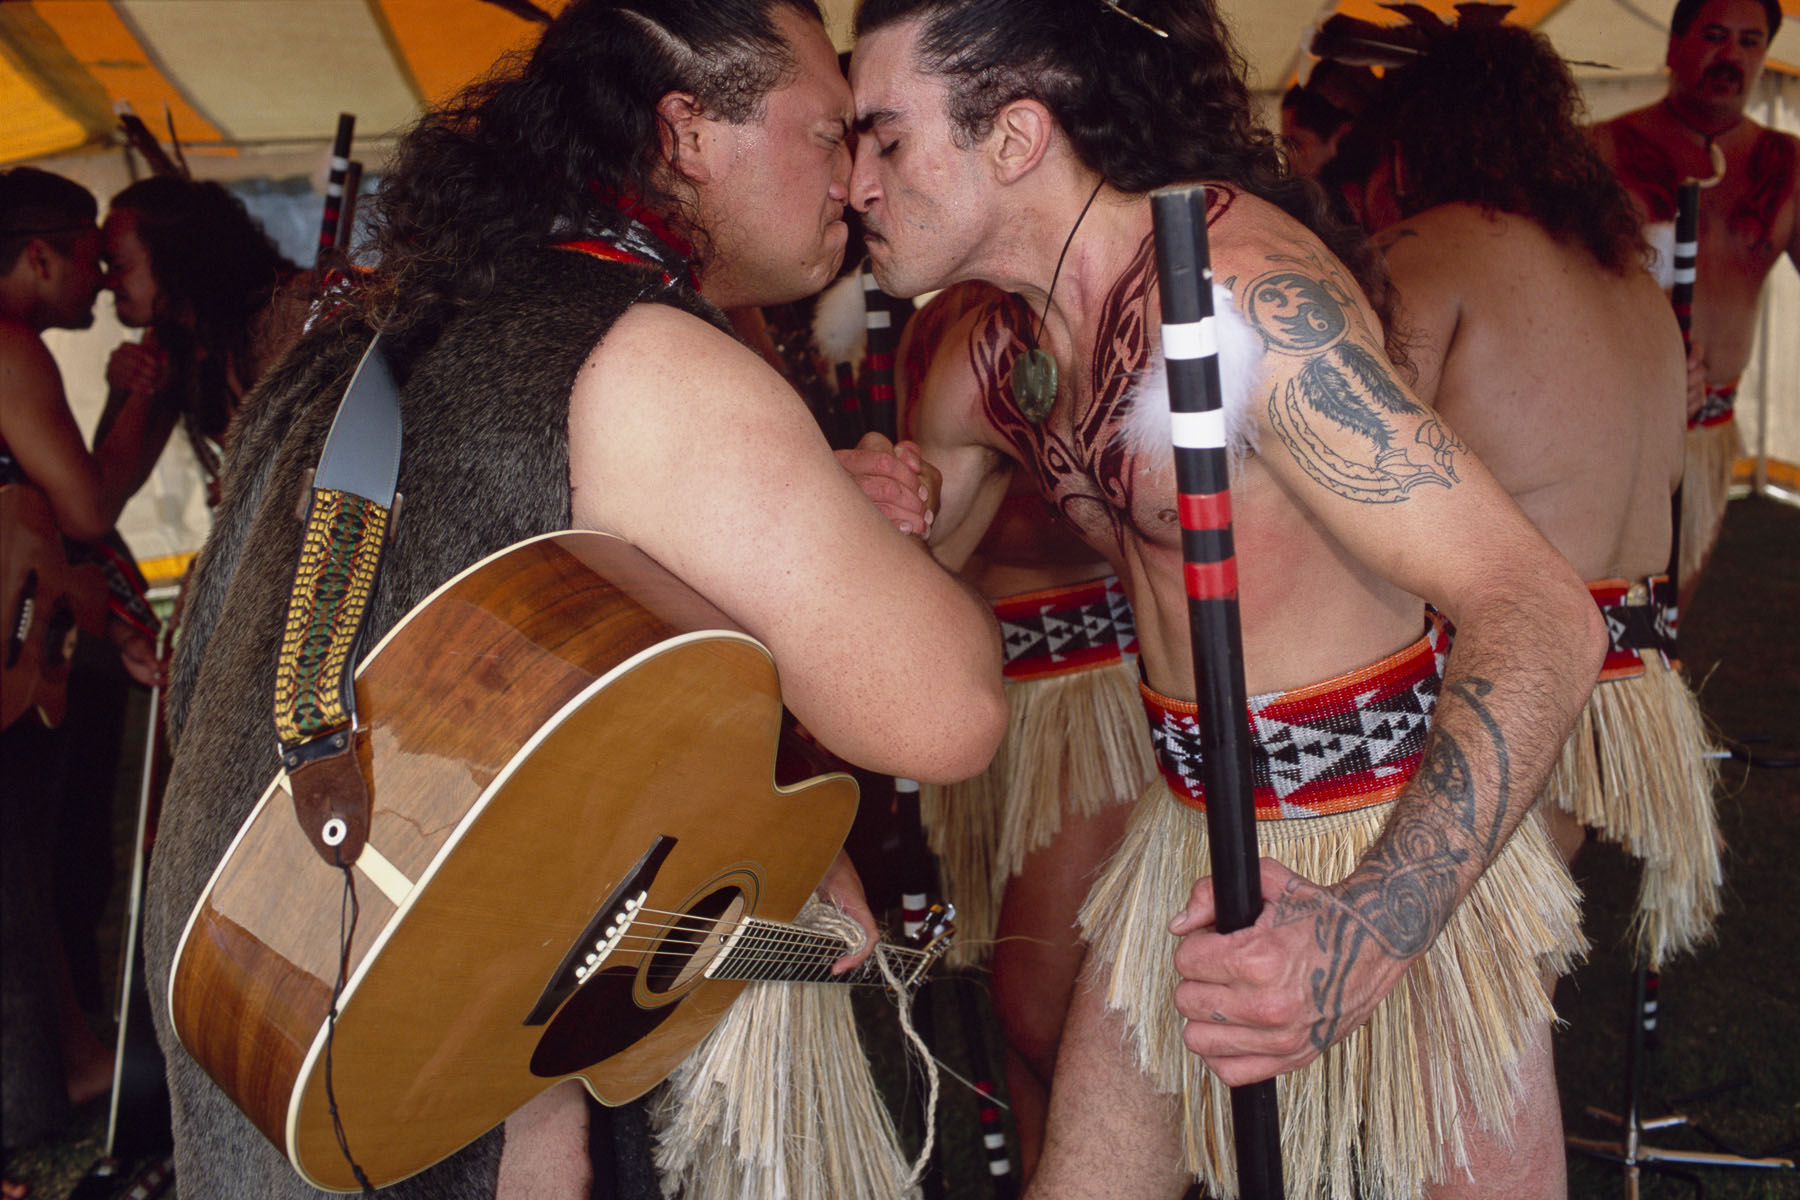 Maori men exchange a hongi, a traditional greeting, during a culture folk arts festival in May 2000